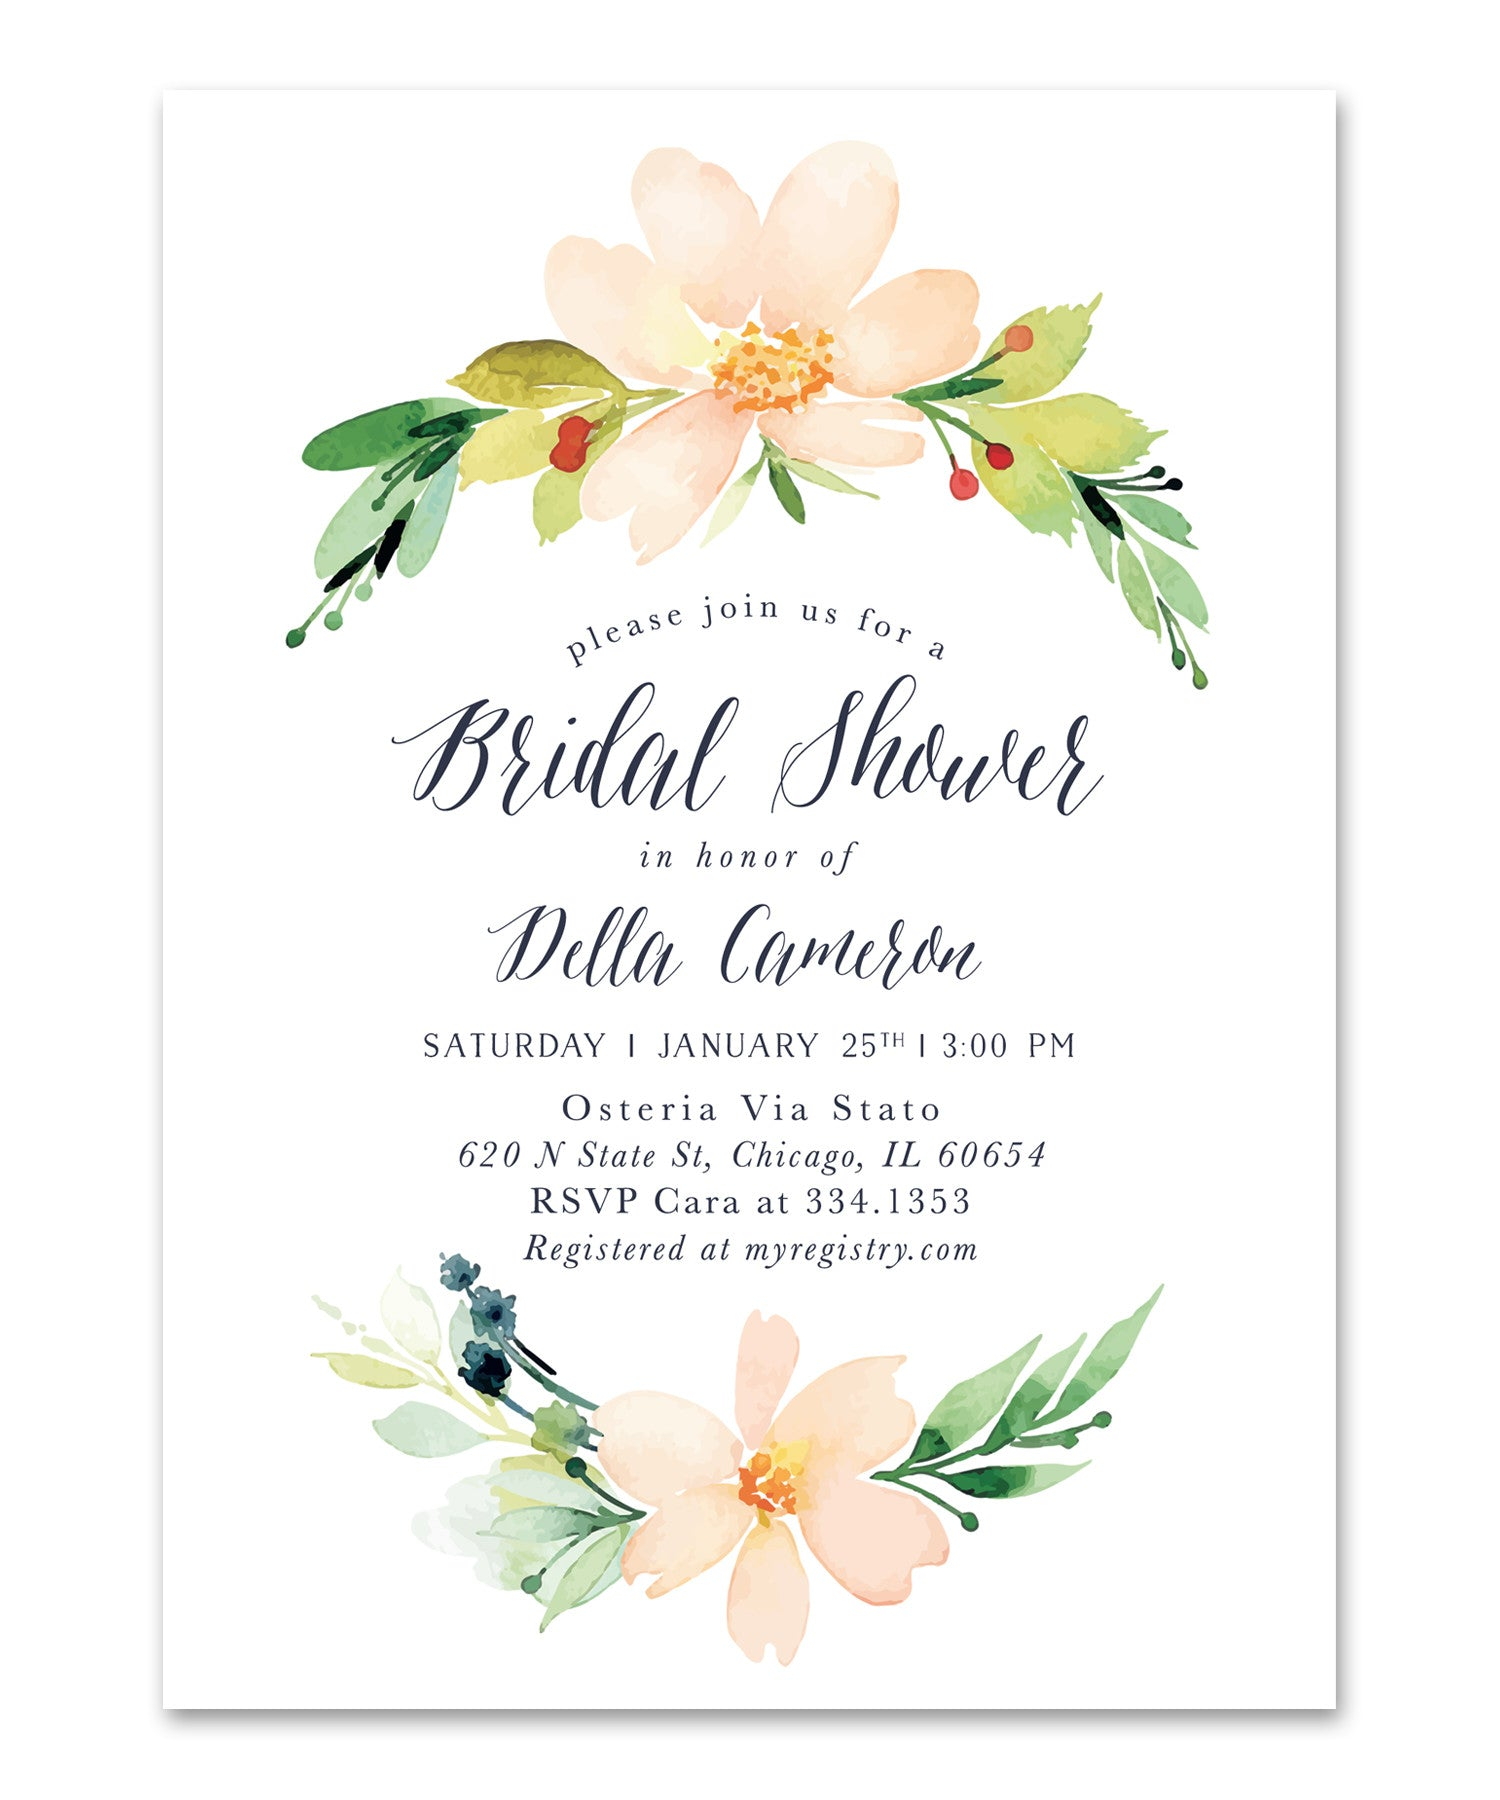 b inserts ideas kmart photo walmart excellent image shower boy at places invitations and gifts bridal signs registry baby